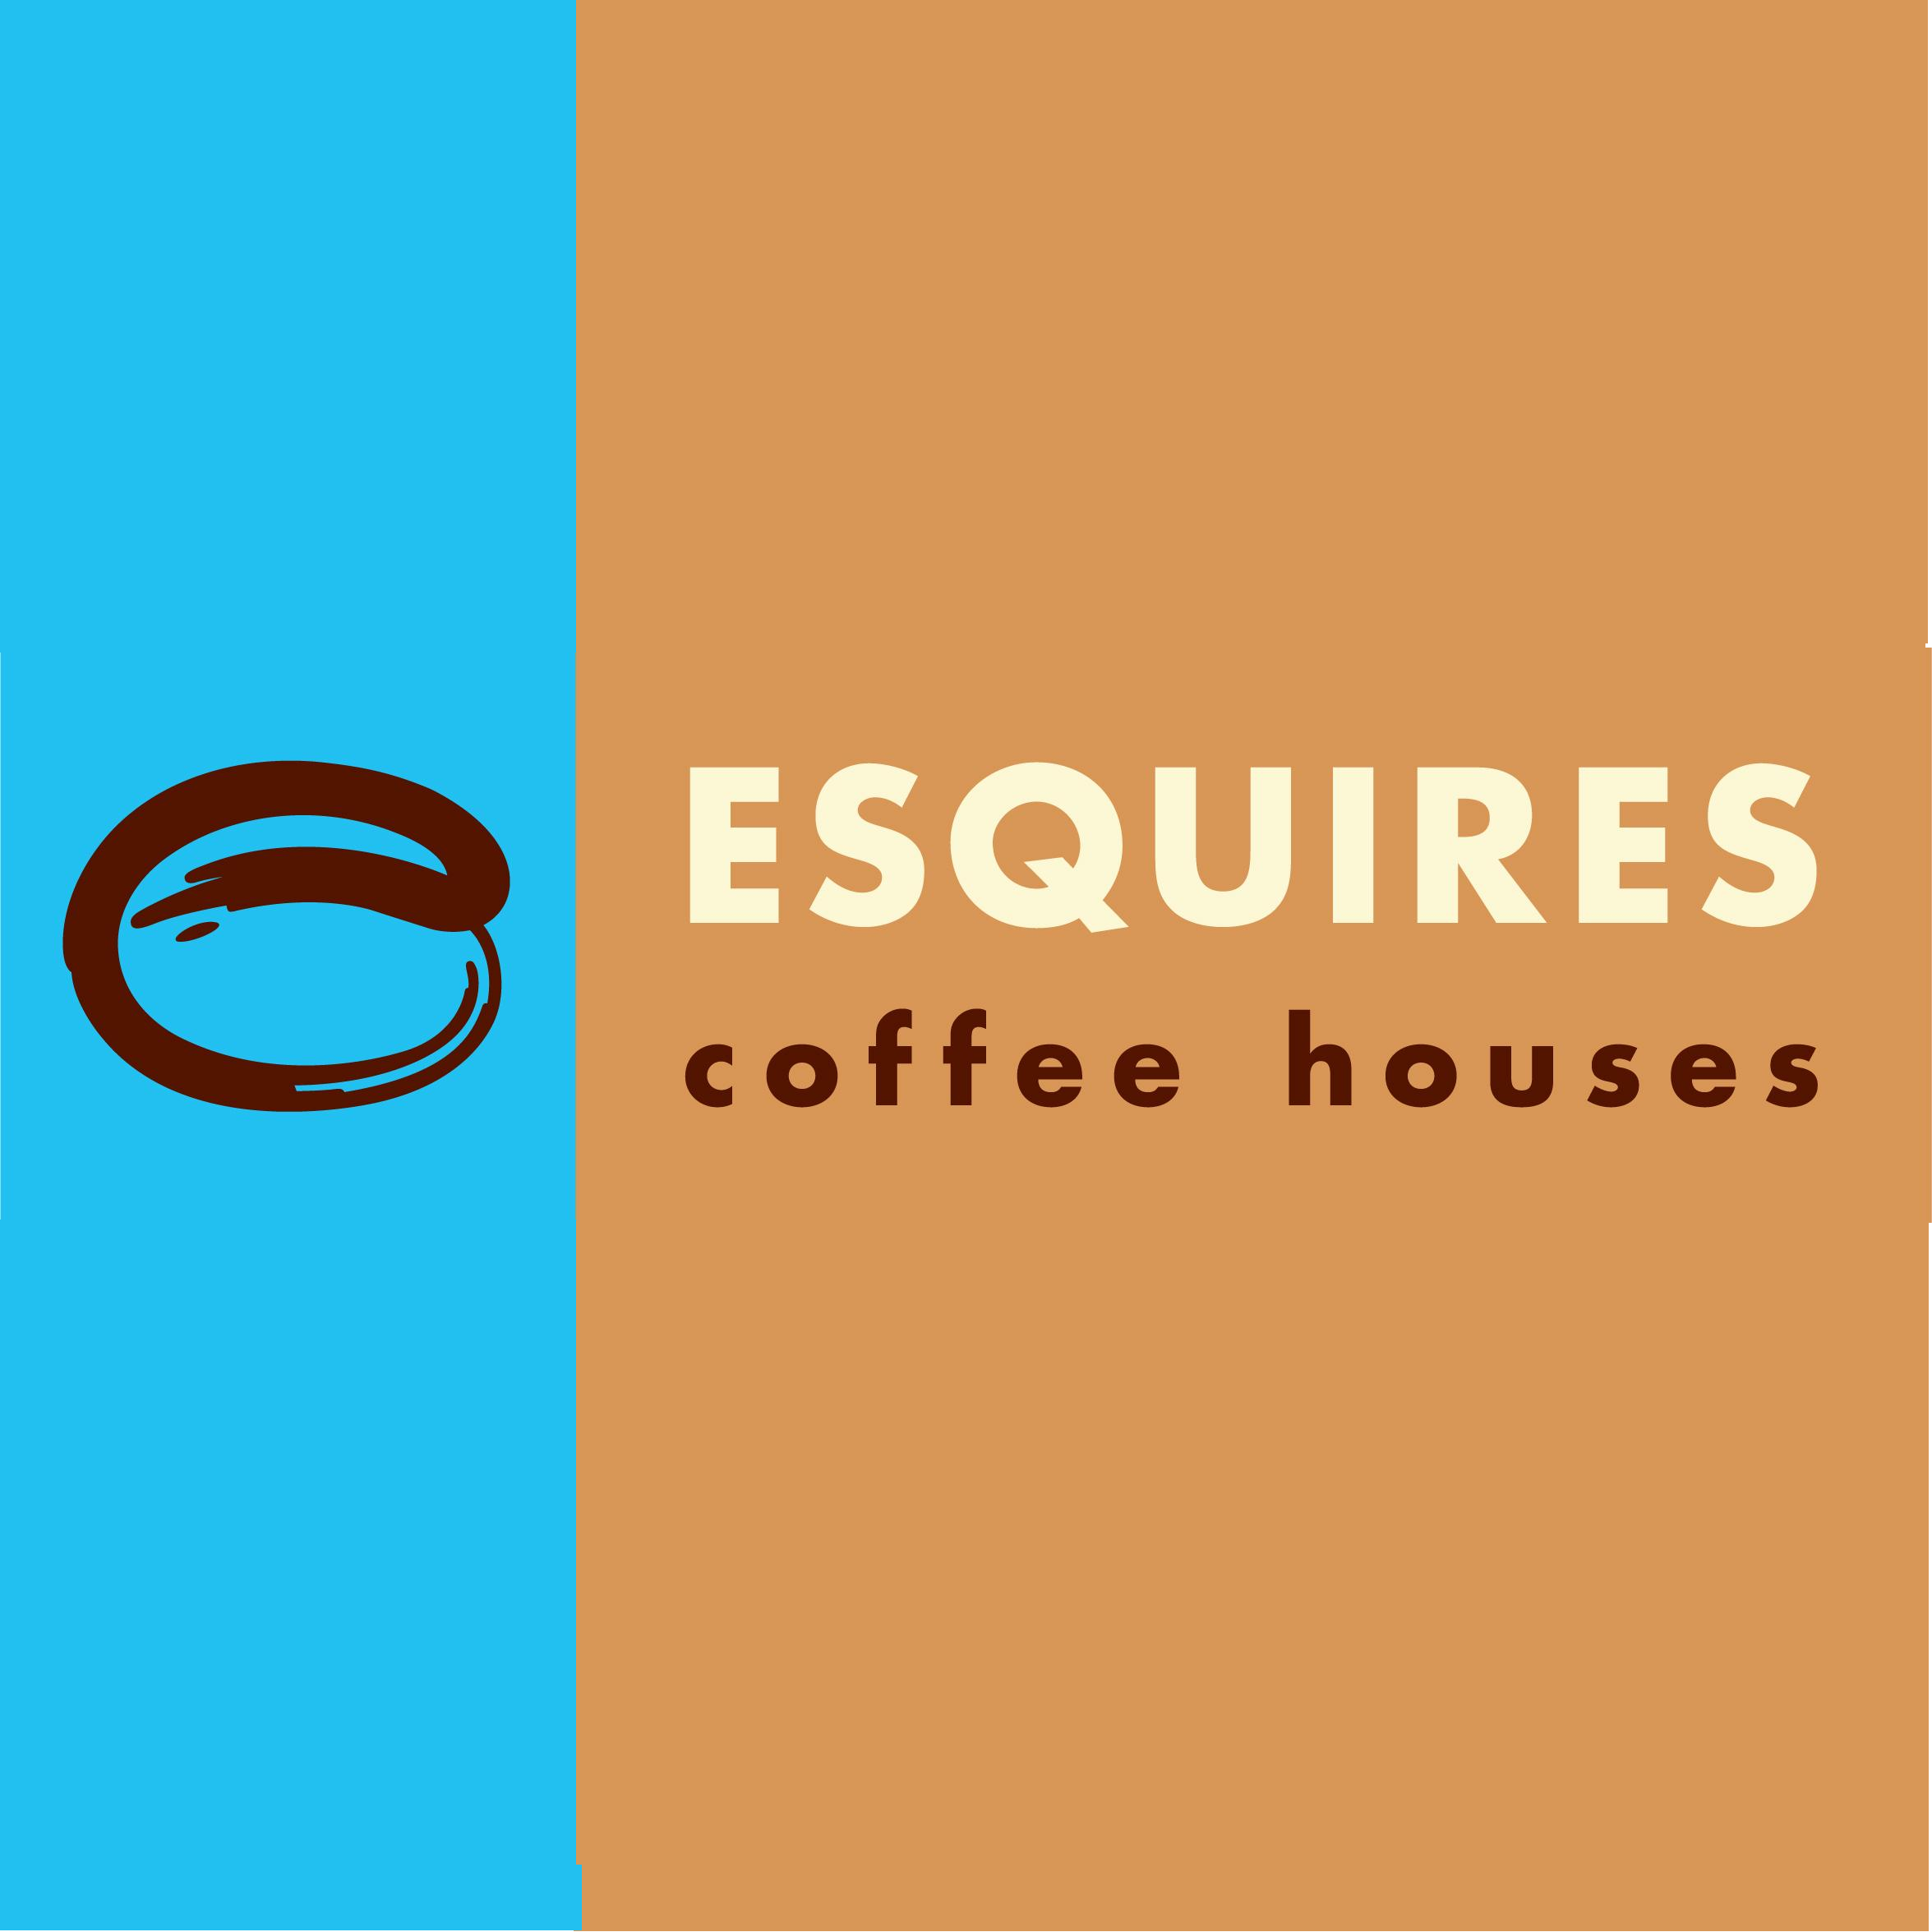 esquires franchise